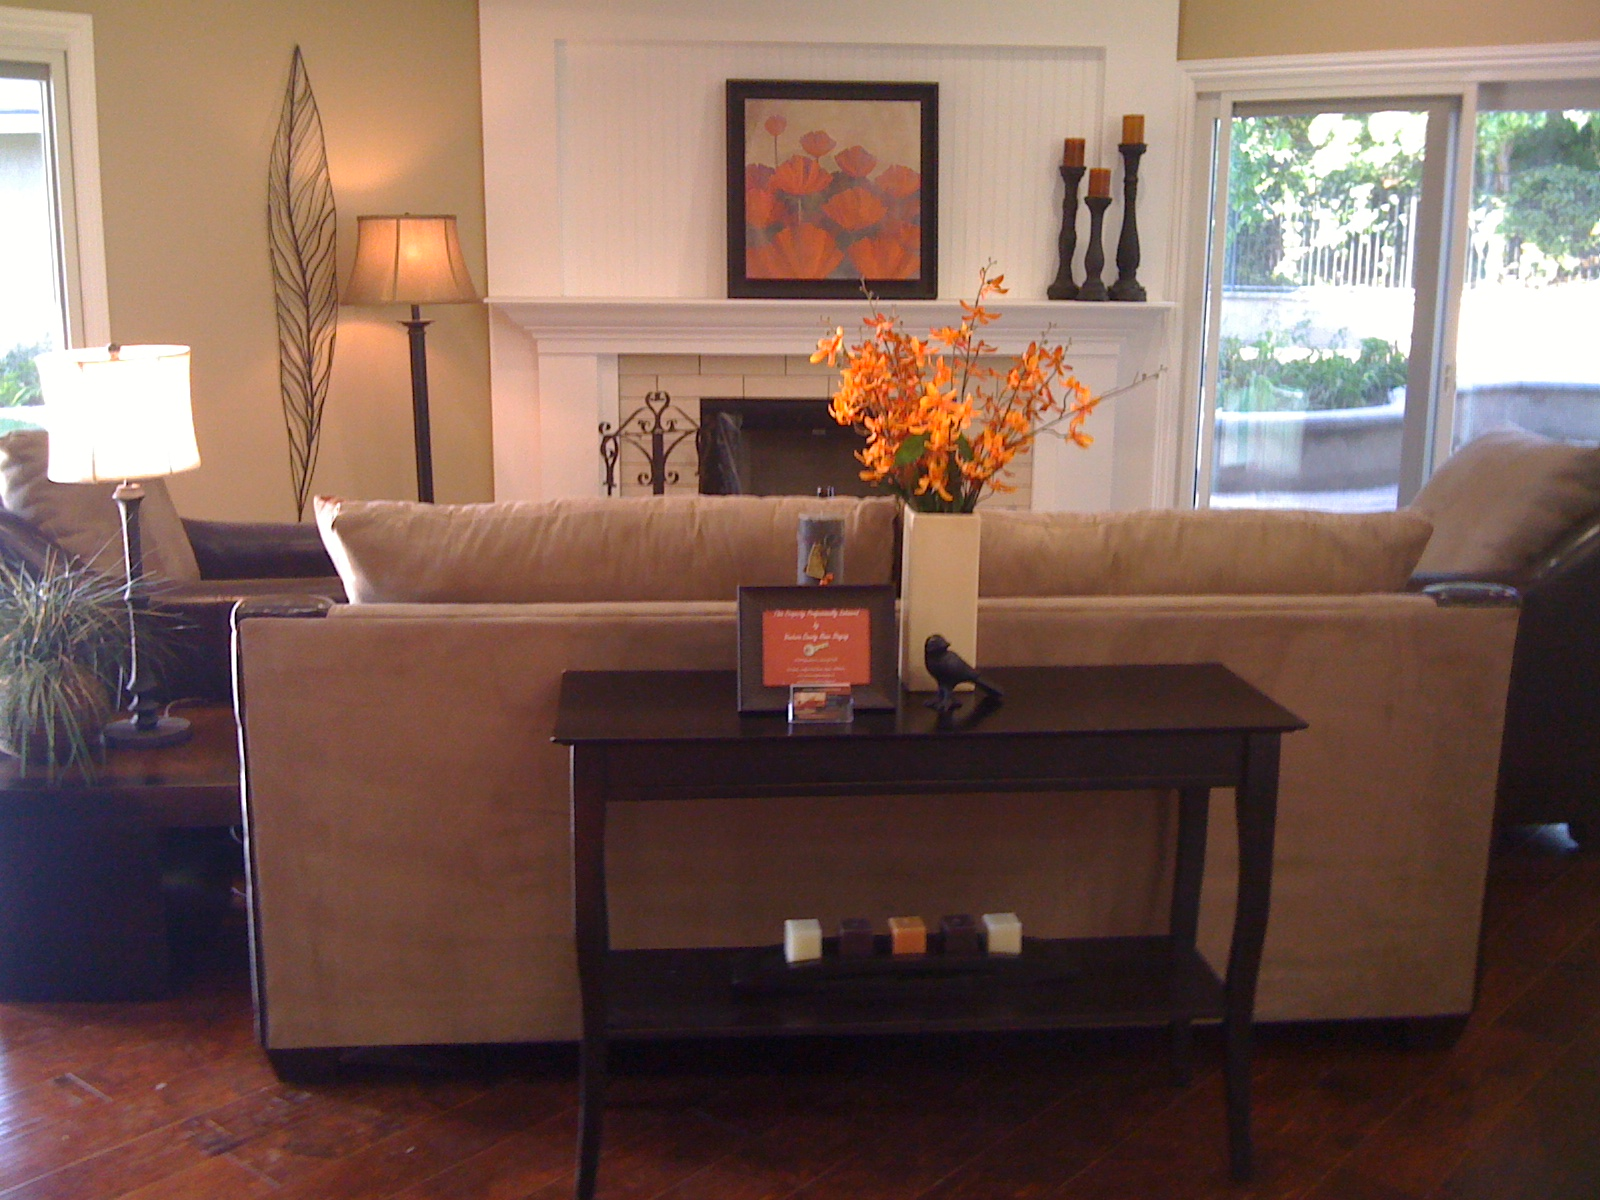 Las Posas Estates in Camarillo Extreme Home Makeover on home walls, home countertops, home garden ideas, home kitchen, home windows, home garden trees, home furnishings, home design, home funeral services, home couch, home upholstery fabric, home decor, home appliances, home bed, home cell phones, home mirrors, home art collection, home sofa sleepers, home health, home roof systems,